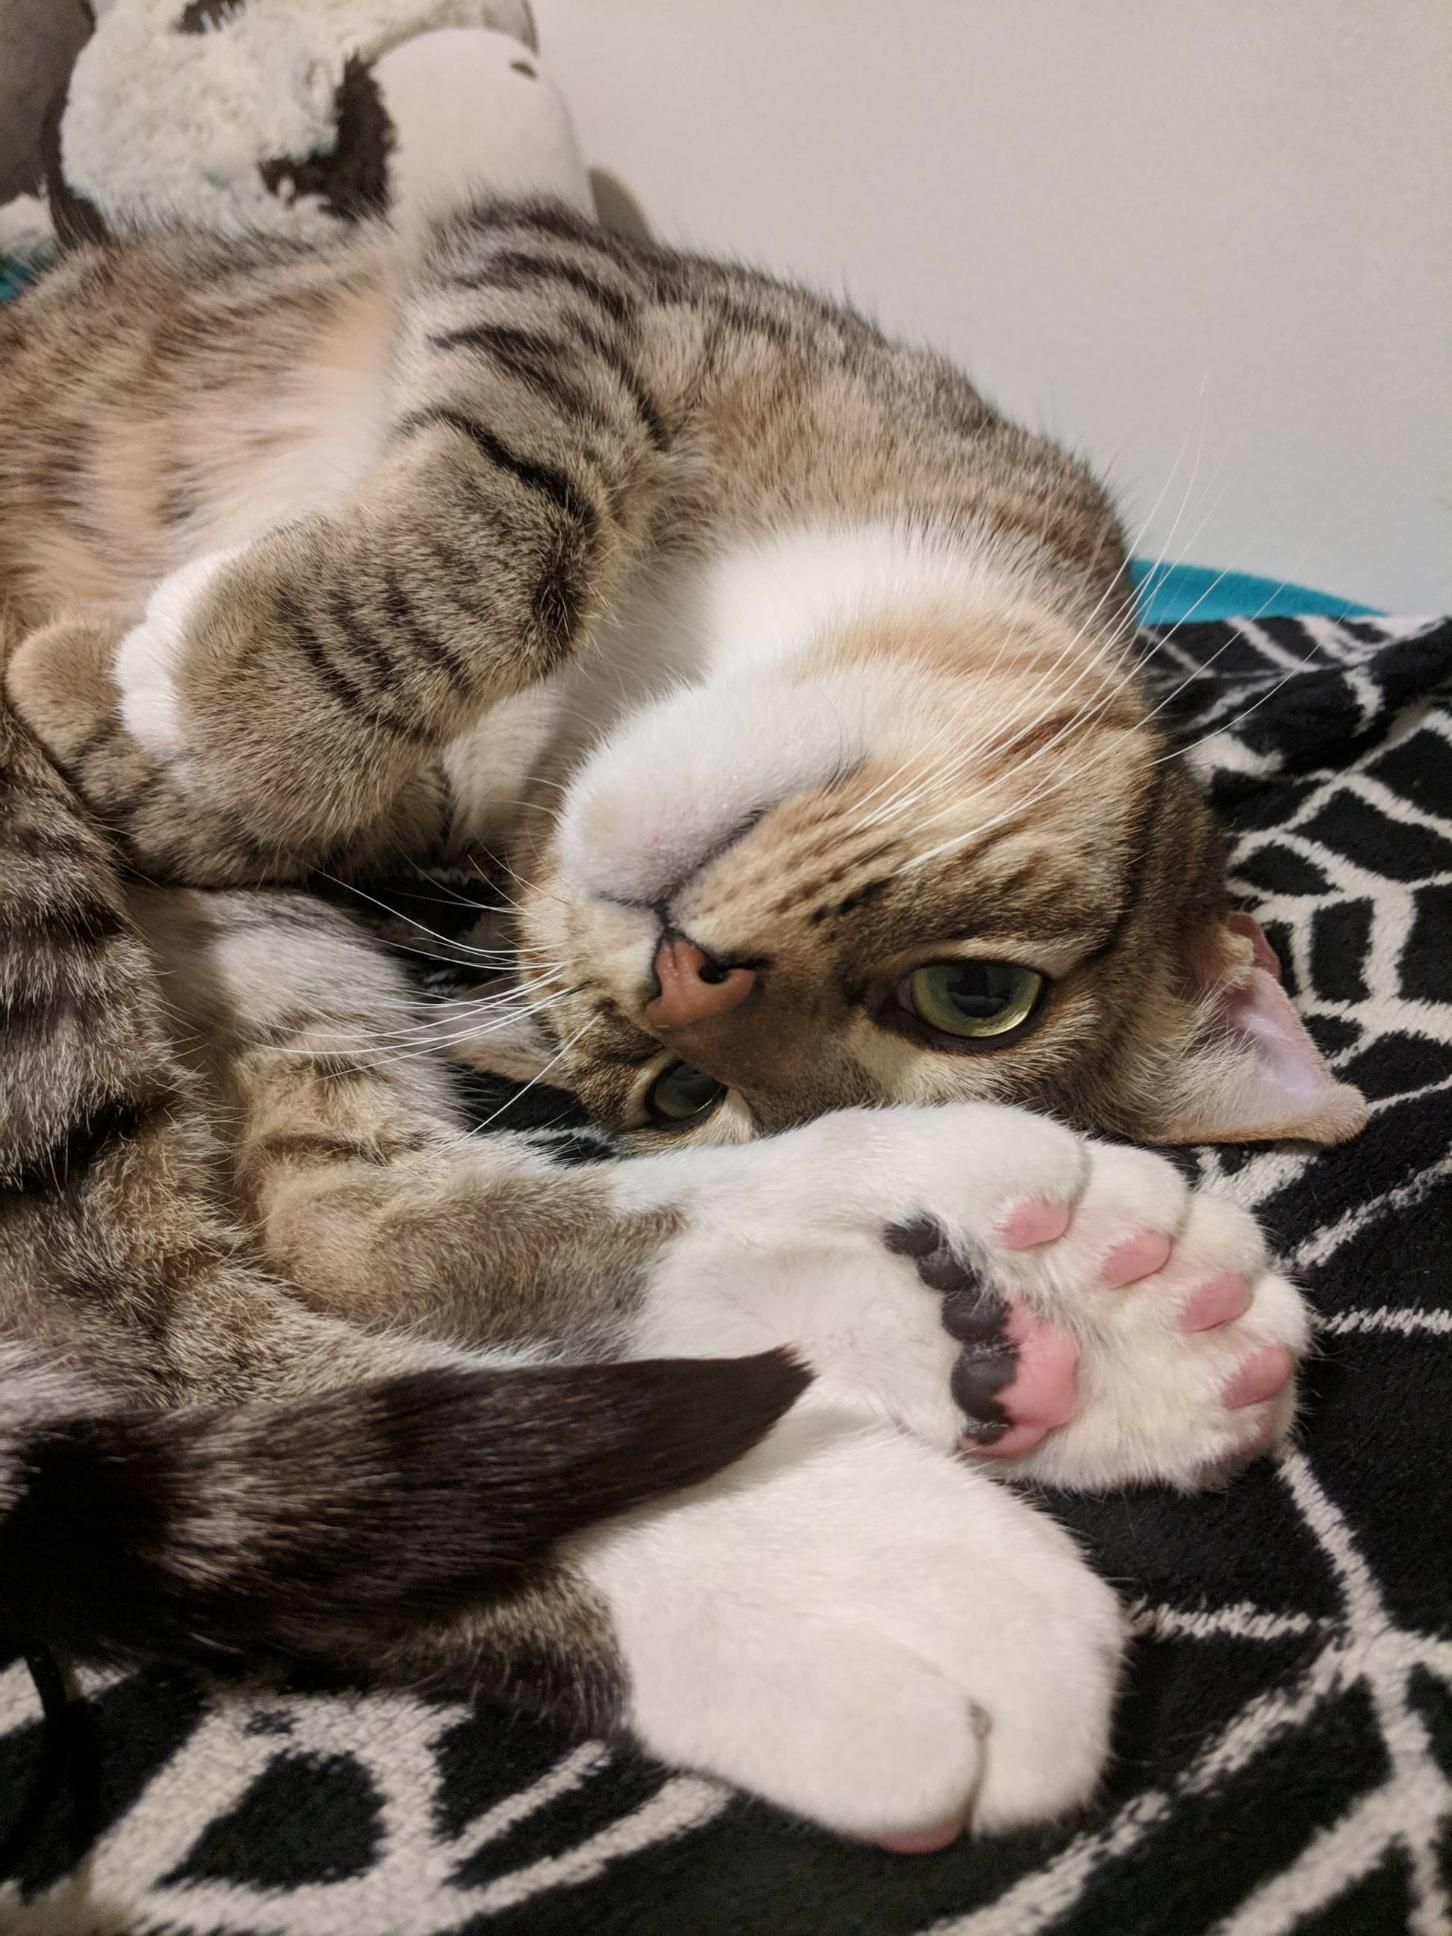 My Friend Is Taking Care Of A Kitty Who Not Only Has Extra Toes But Extra Jelly Beans As Well Kitty Cats Jelly Beans